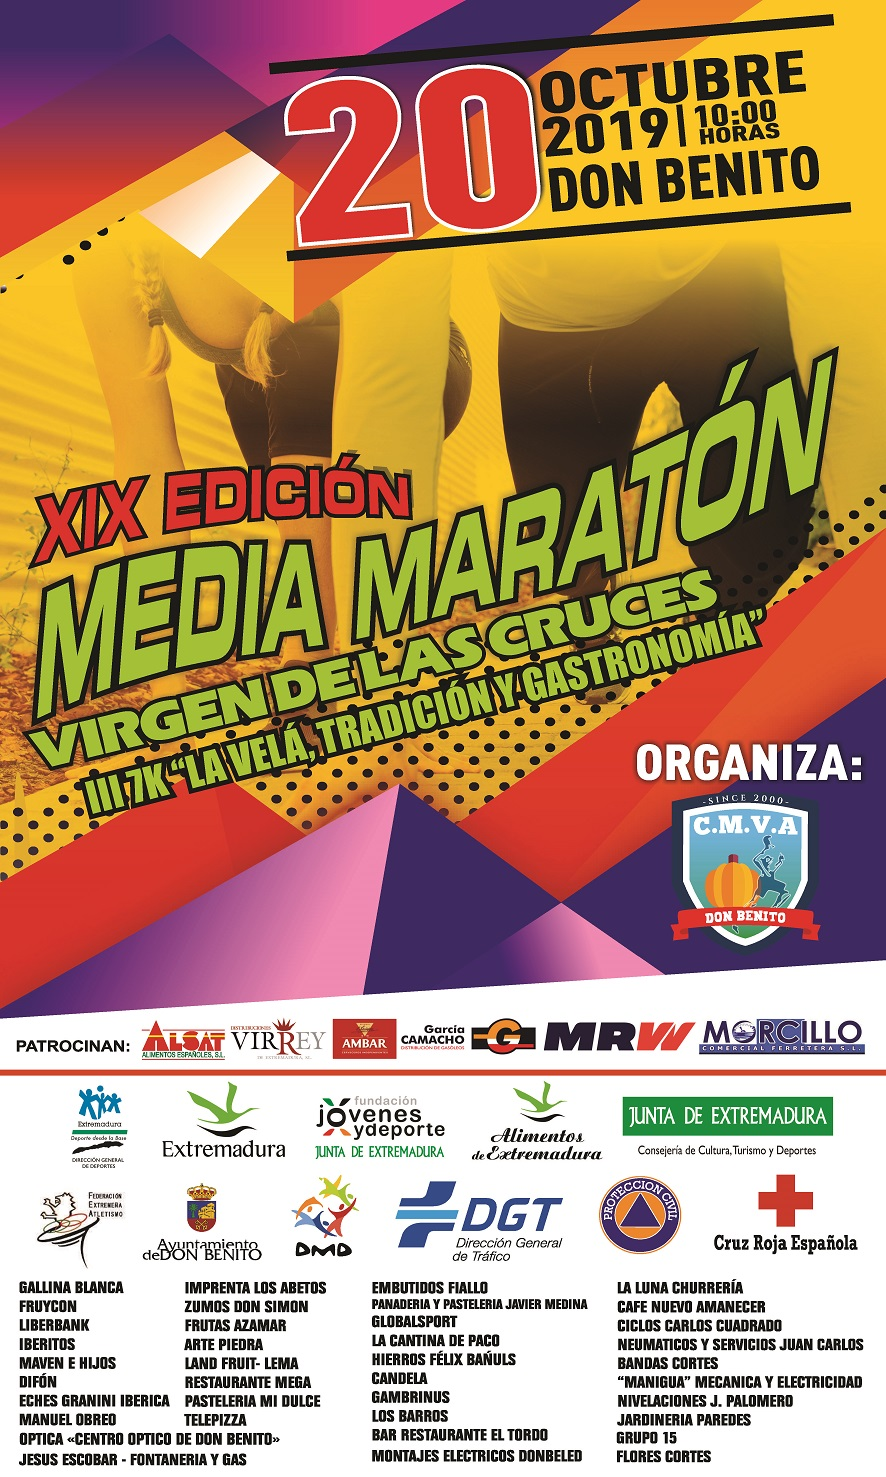 XIX Media Maraton Virgen de las Cruces